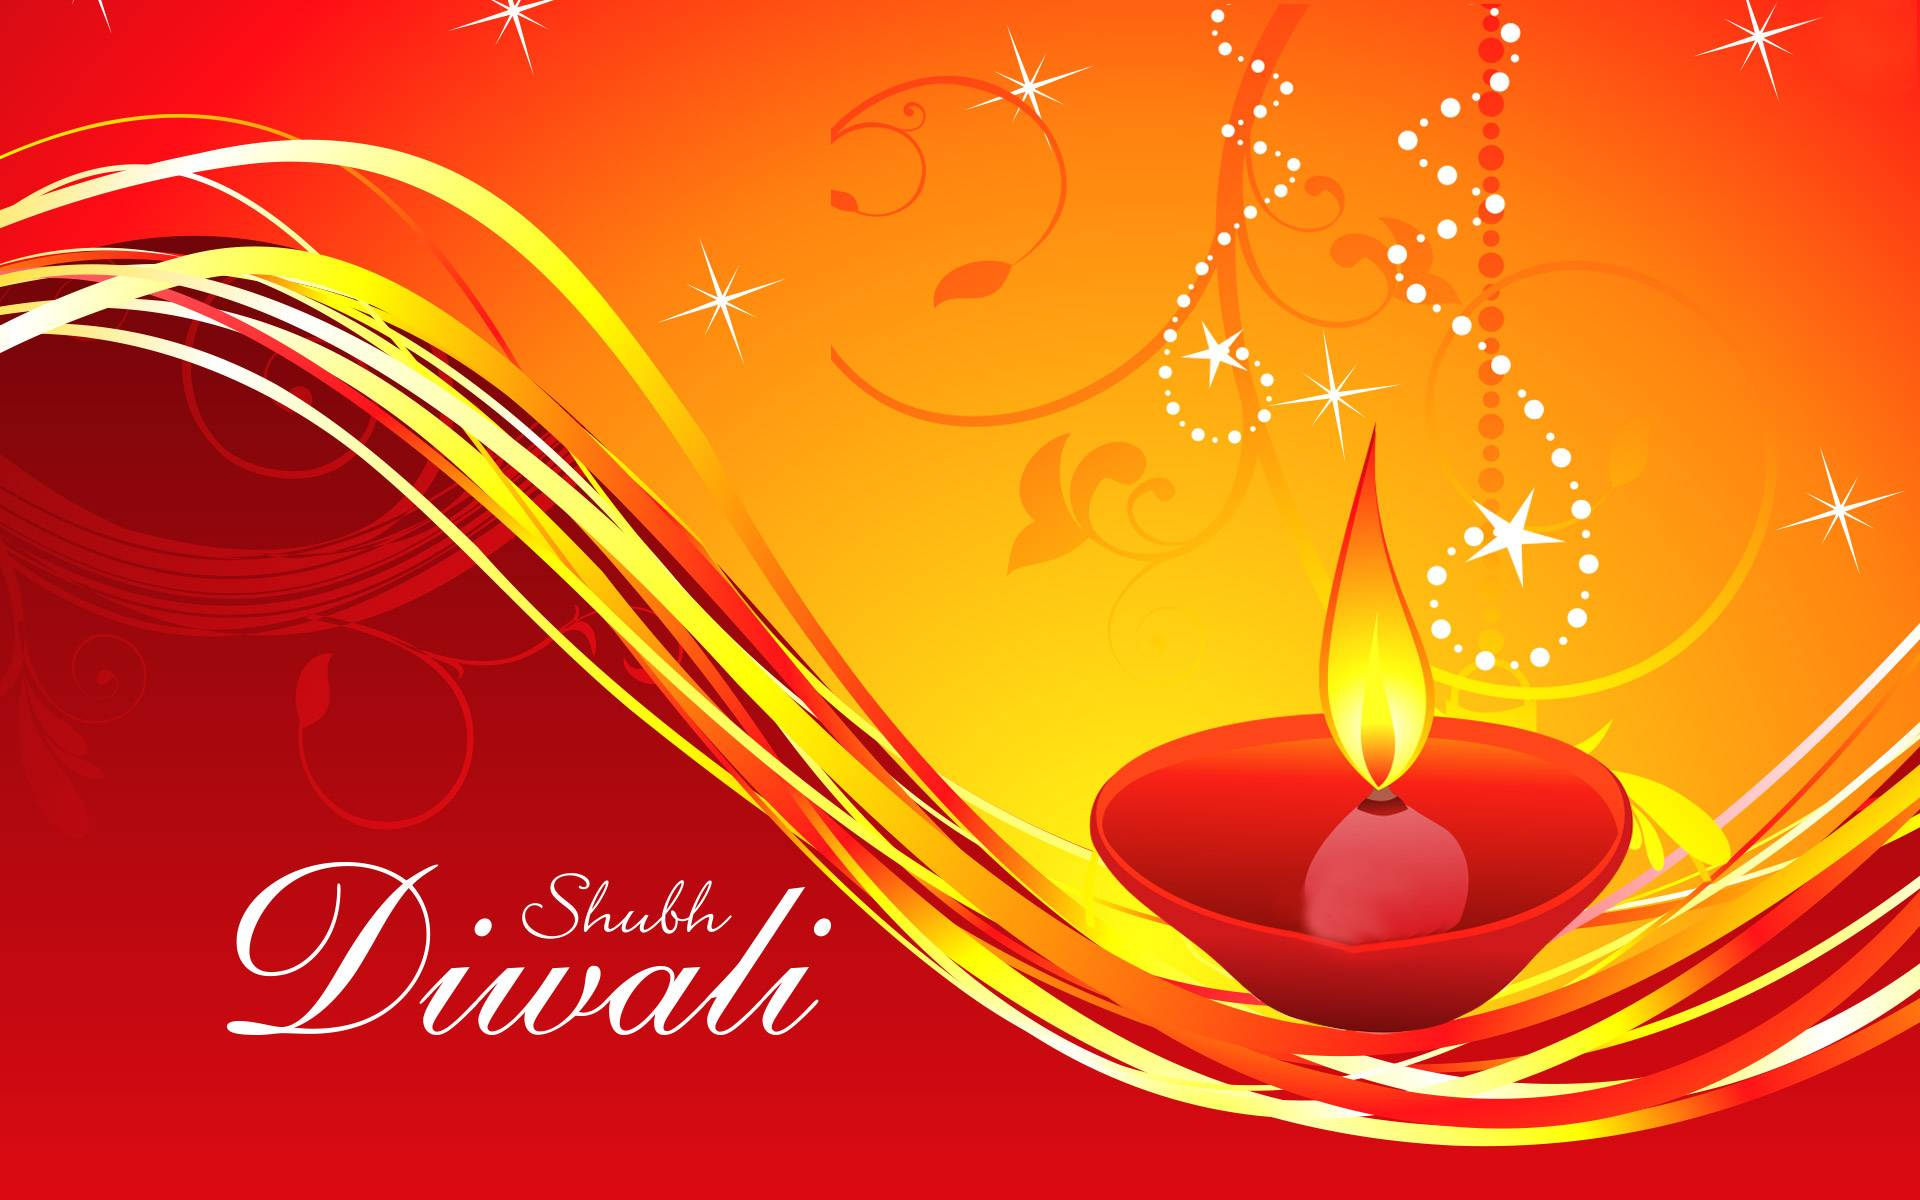 beautiful-diwali-hd-wallpaper-for-screensaver